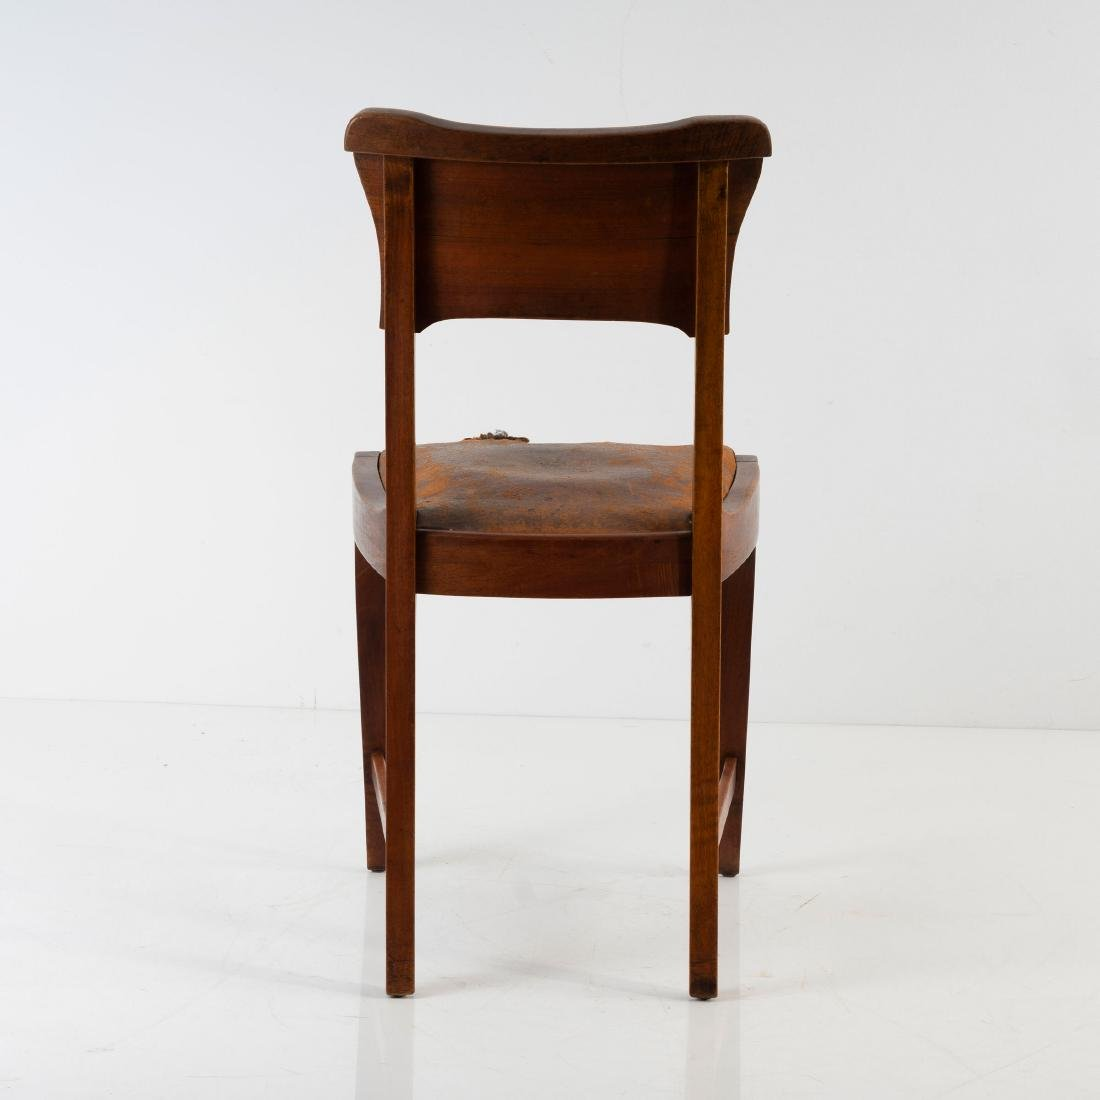 Side chair, c. 1913 - 3